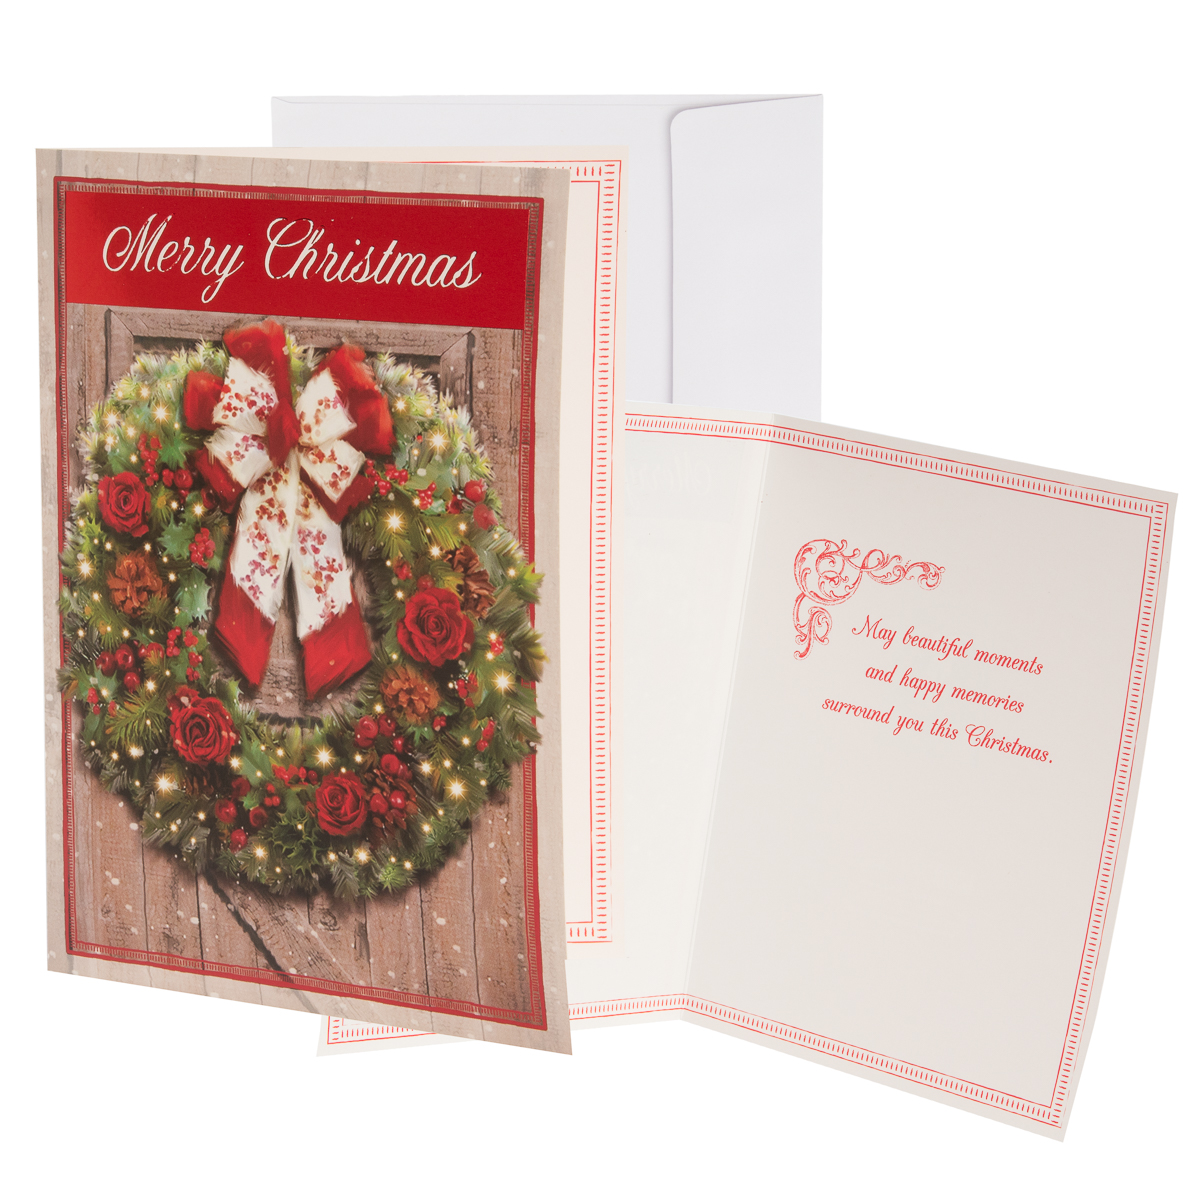 48pk-Merry-Christmas-Cards-Bulk-Assortment-Holiday-Card-Pack-with-Foil-amp-Glitter thumbnail 28